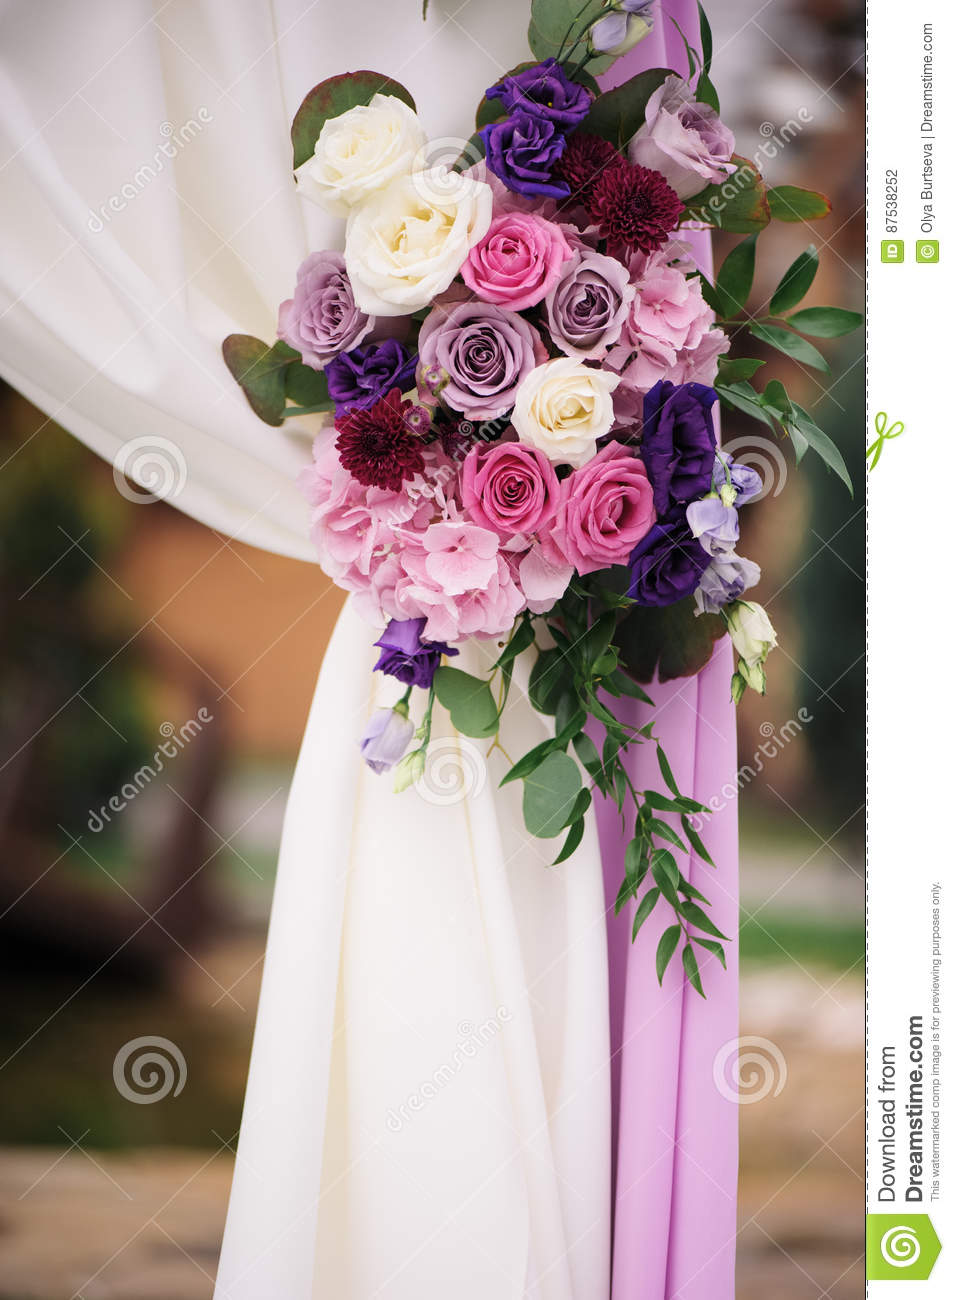 Arch Element With Flowers For Wedding Decorations Stock Photo